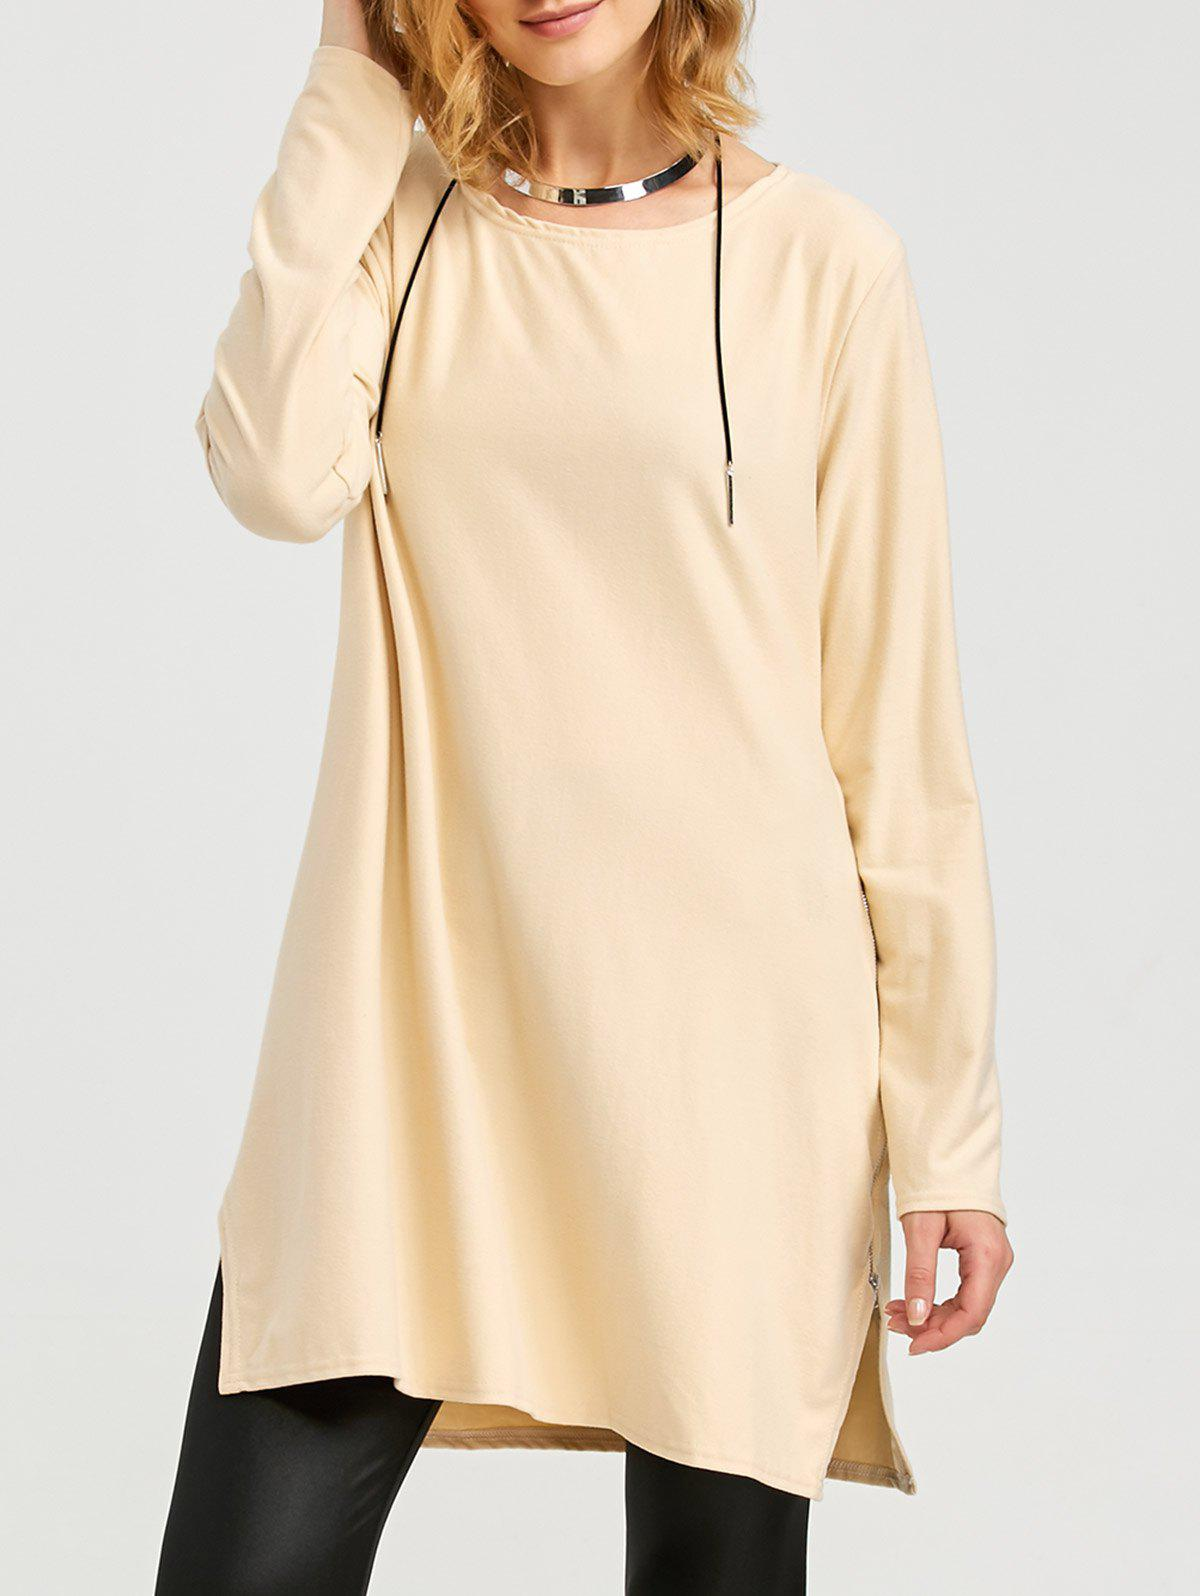 Fashion Round Collar Long Sleeve Pure Color Zipper Type Pollover Women BlouseWomen<br><br><br>Size: M<br>Color: APRICOT